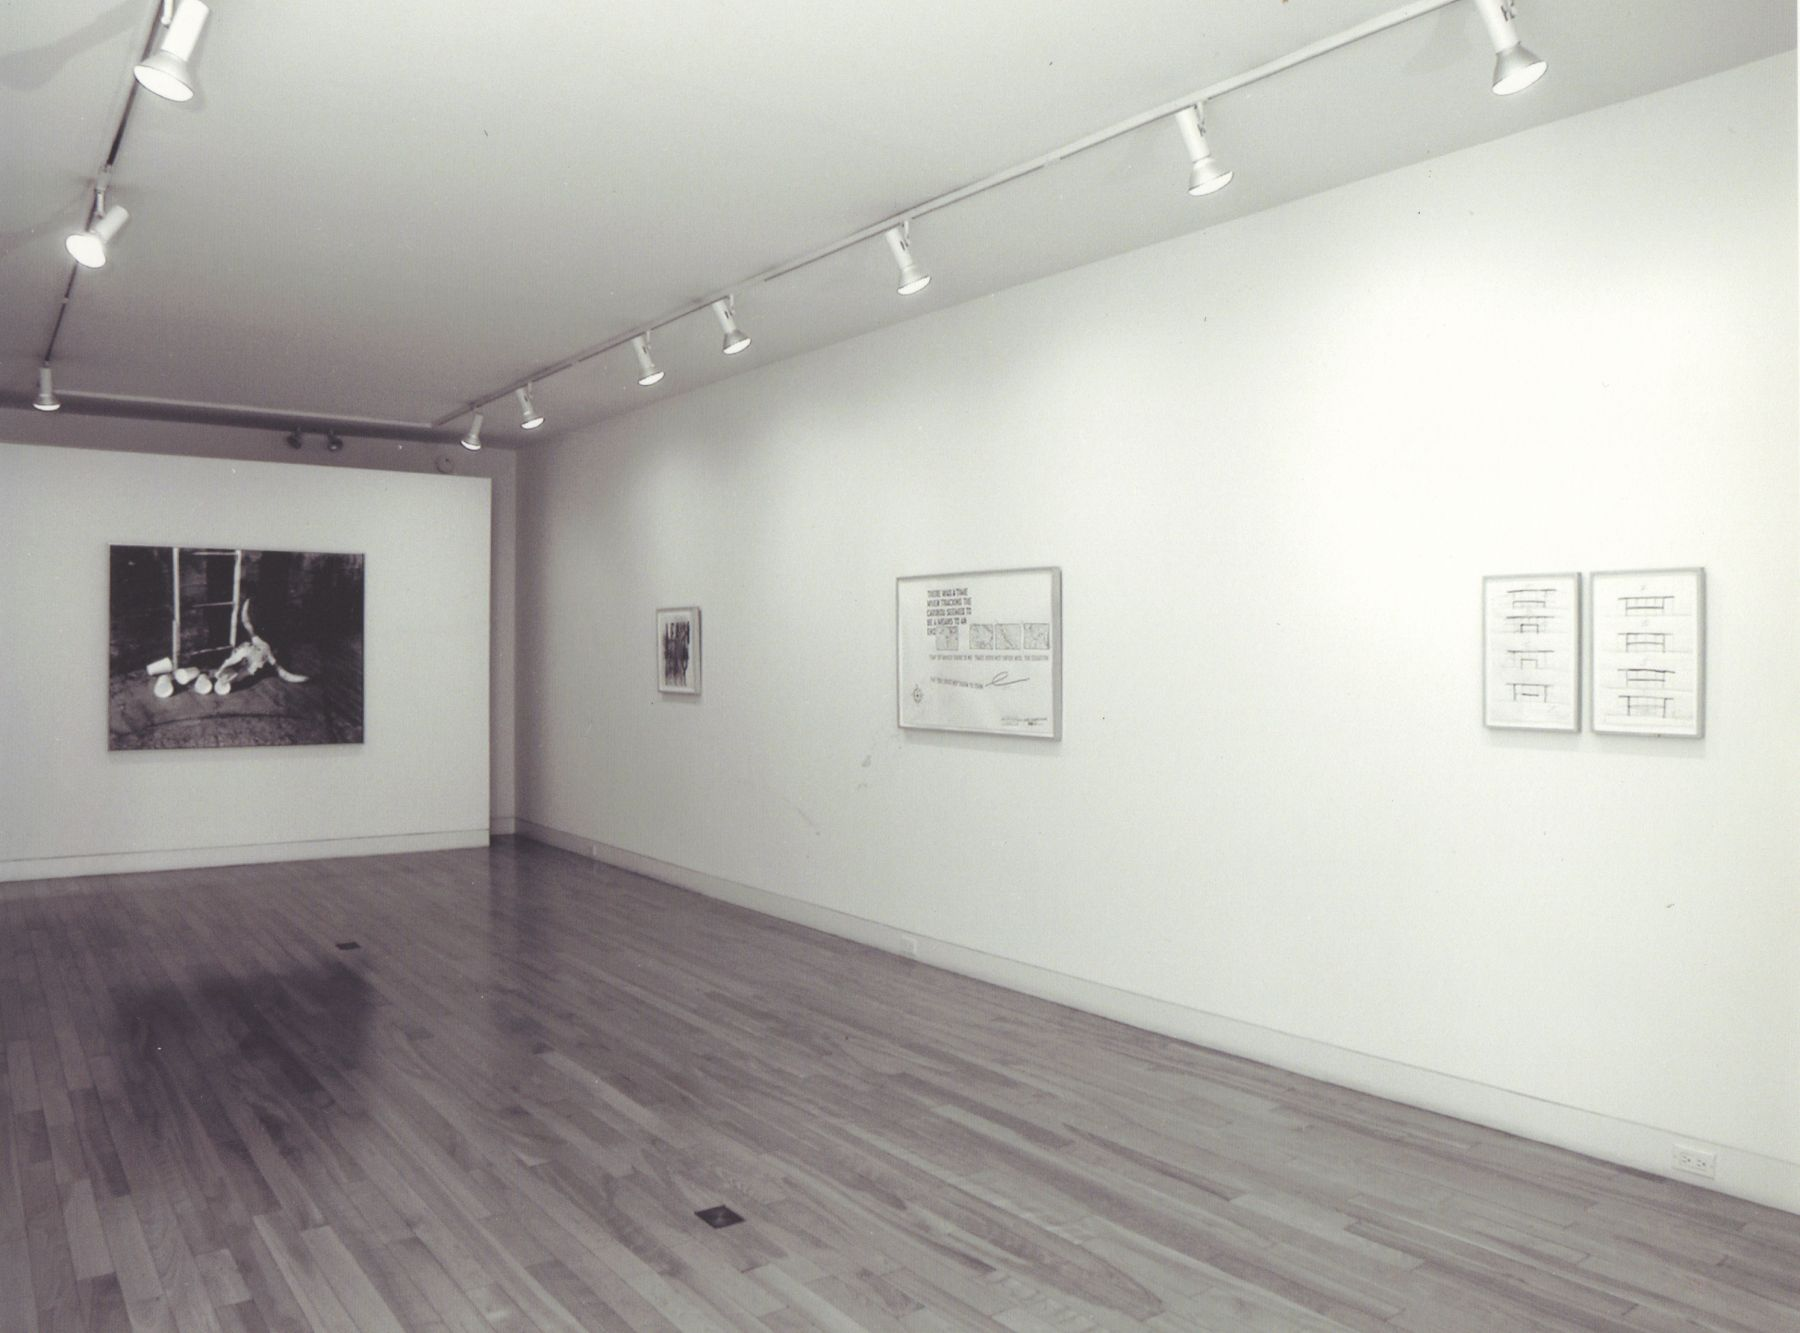 Installation view, Recent Works on Paper, 59 EAST 79